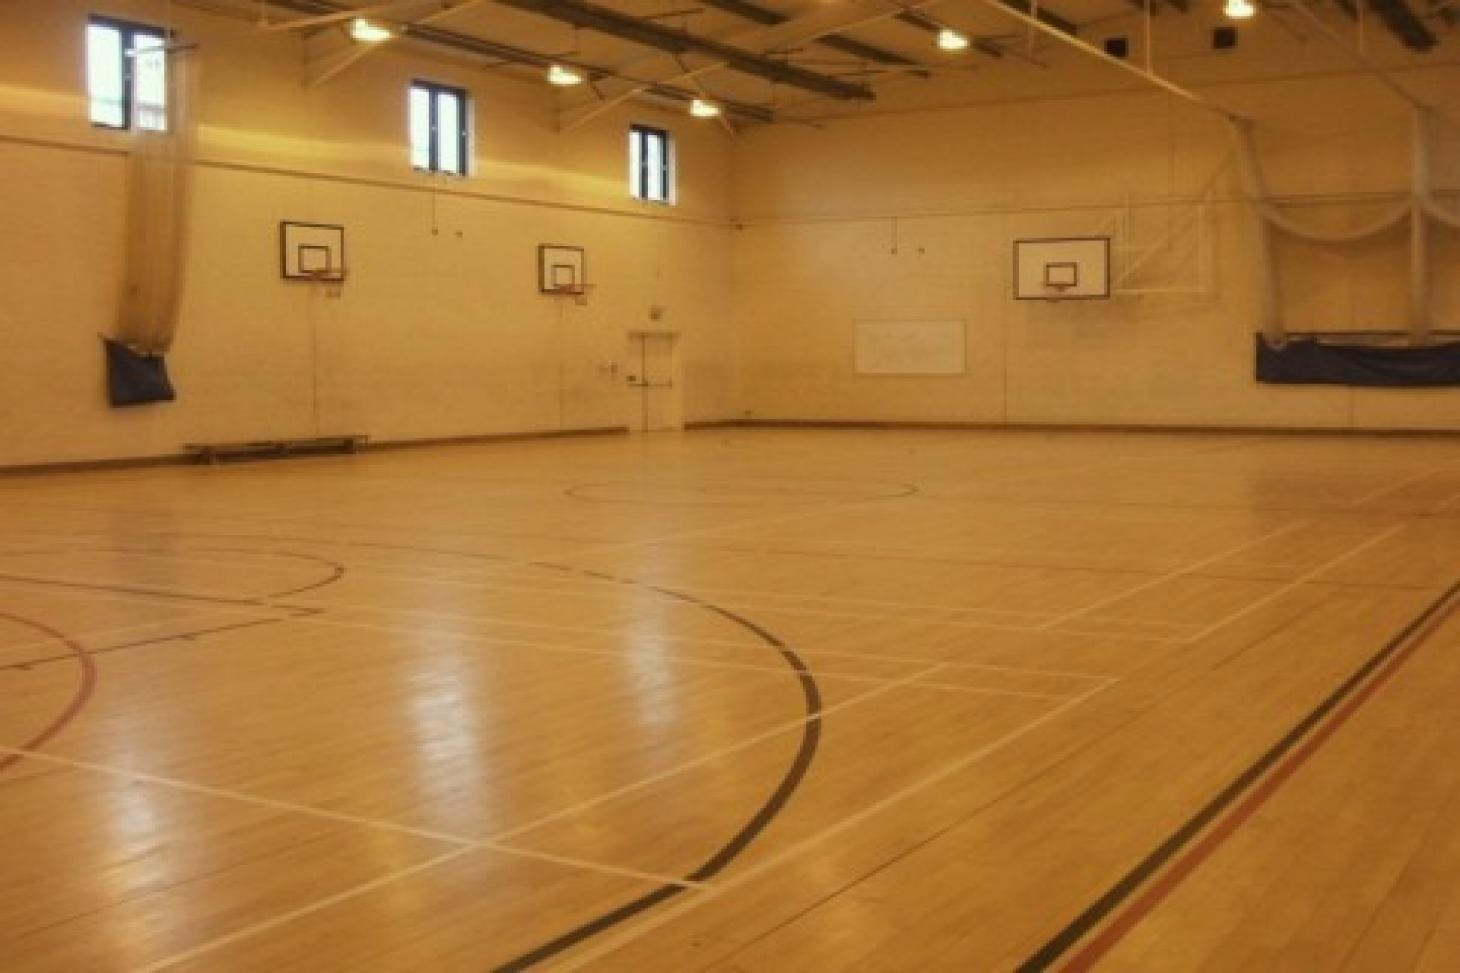 Cleeve Park School Indoor | Hard badminton court